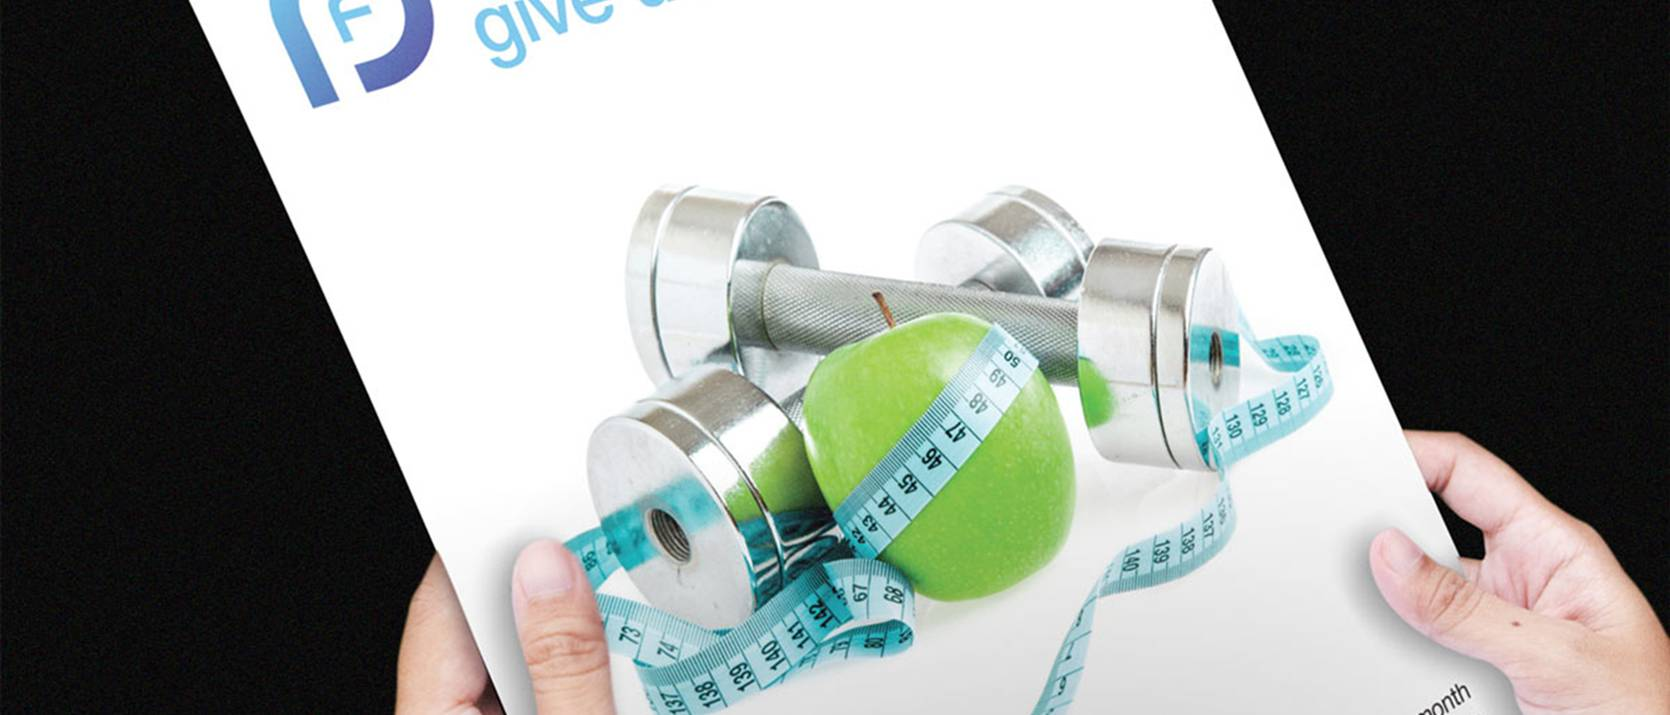 hands holding flyer, apple, measuring tape, hand held weights